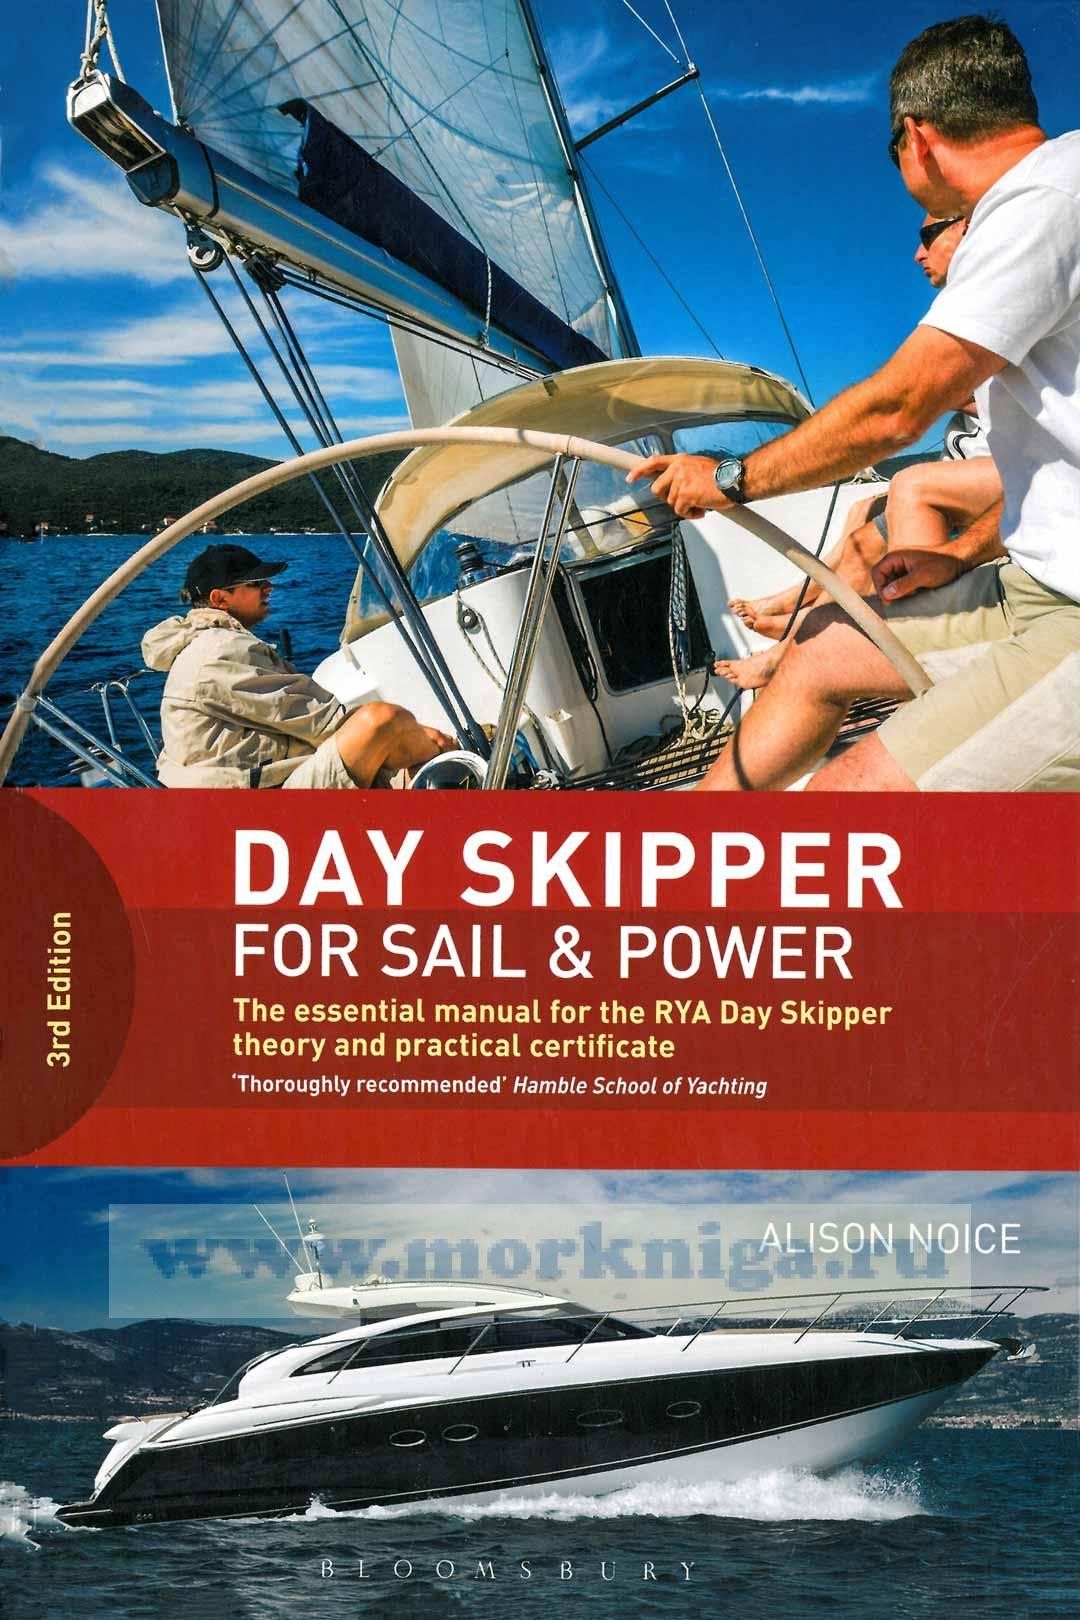 Day Skipper for Sail and Power 3rd Edition